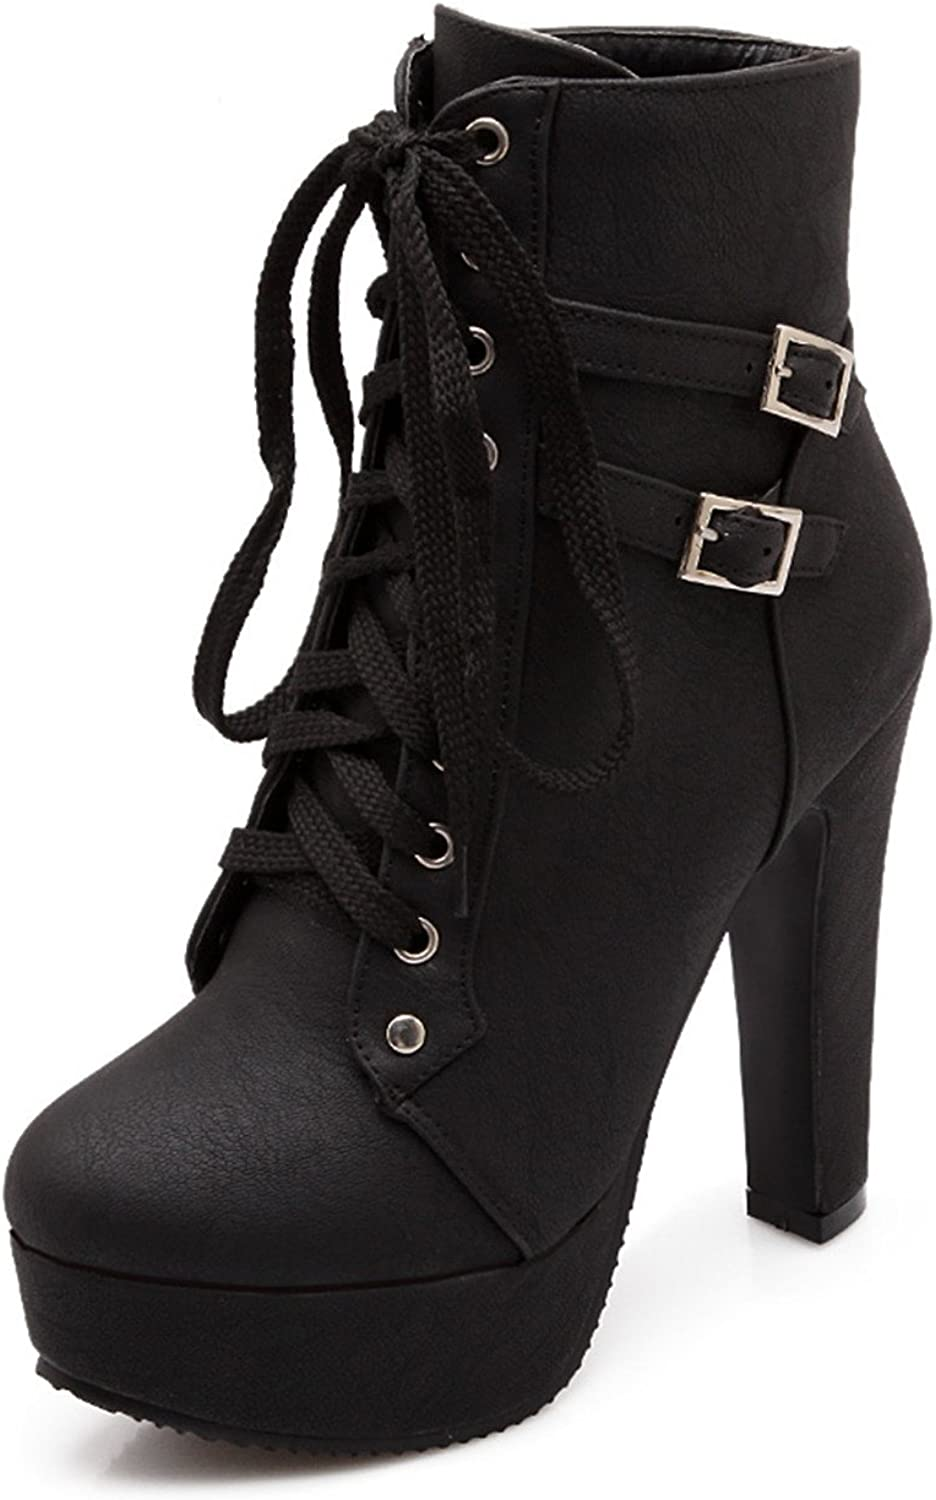 100FIXEO Women Sexy Platform High Heels Lace-Up Buckle Strap Ankle Boots